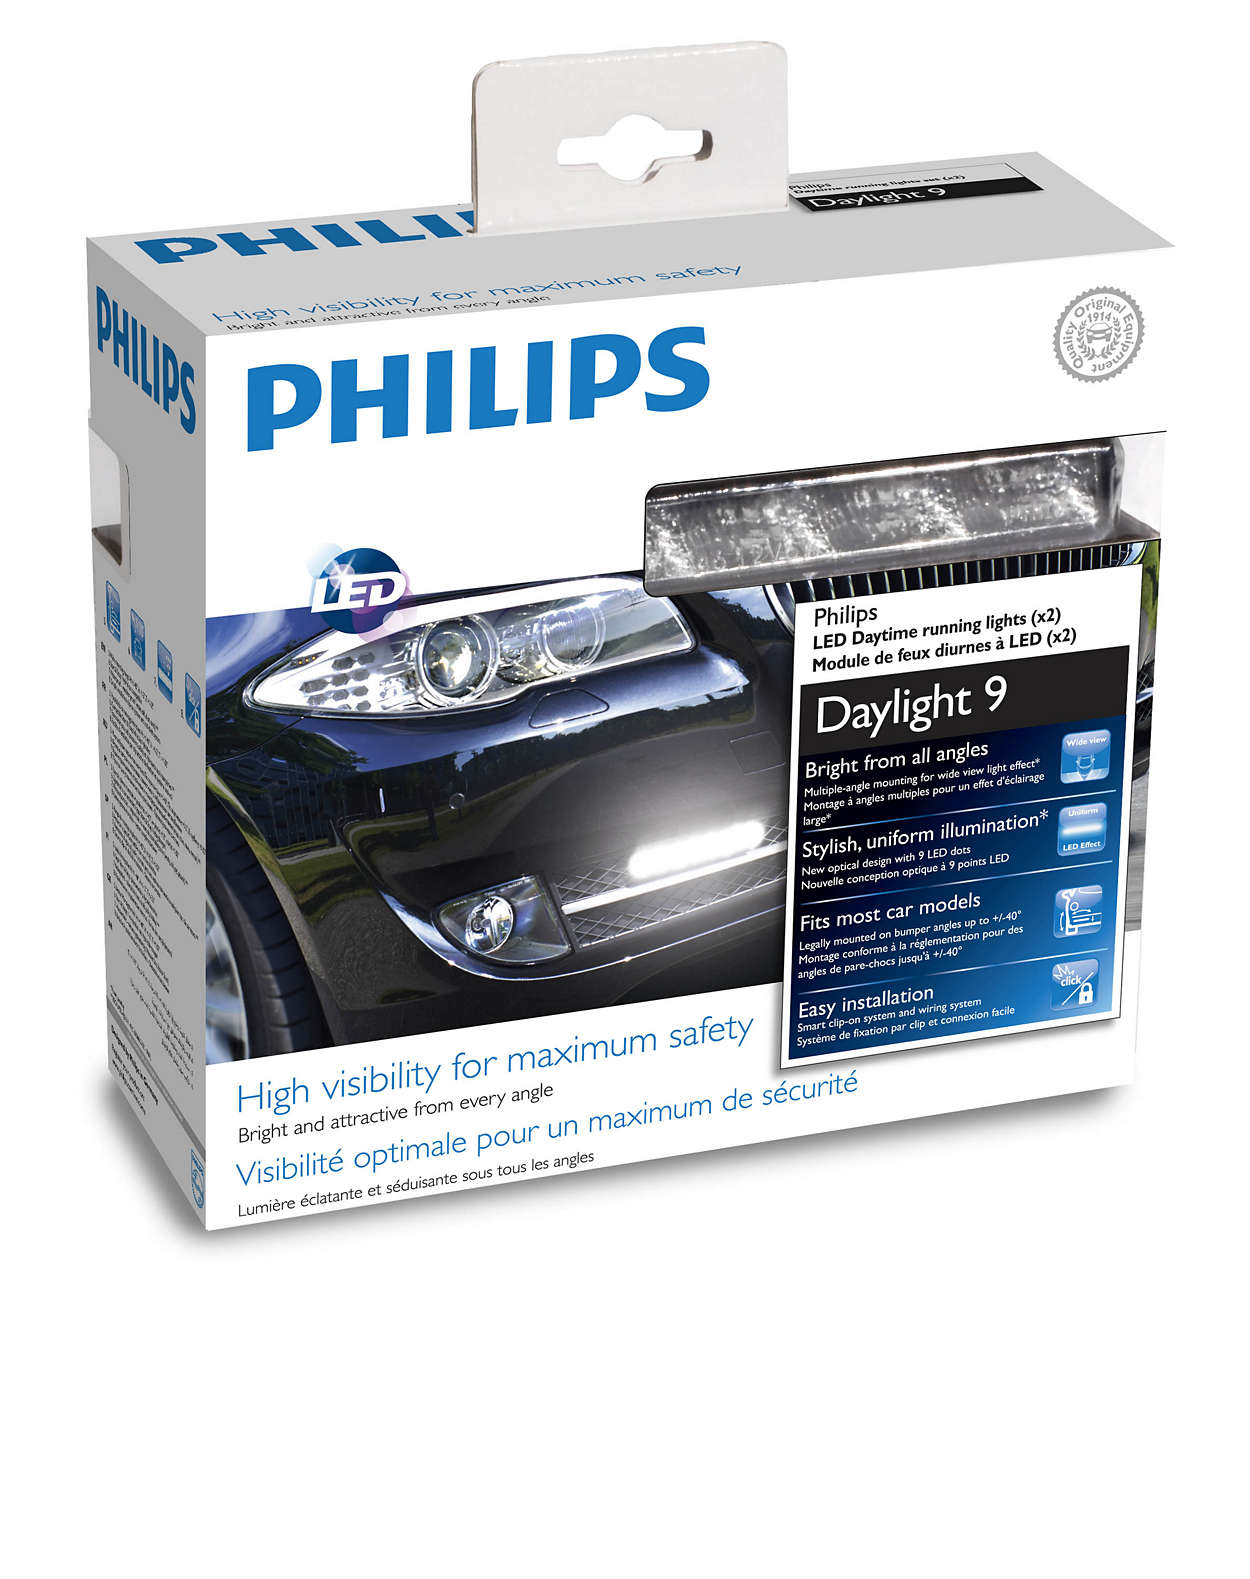 Daylight 9 Led Daytime Running Lights 12831wledx1 Philips Wiring Drl Download Image 0 1